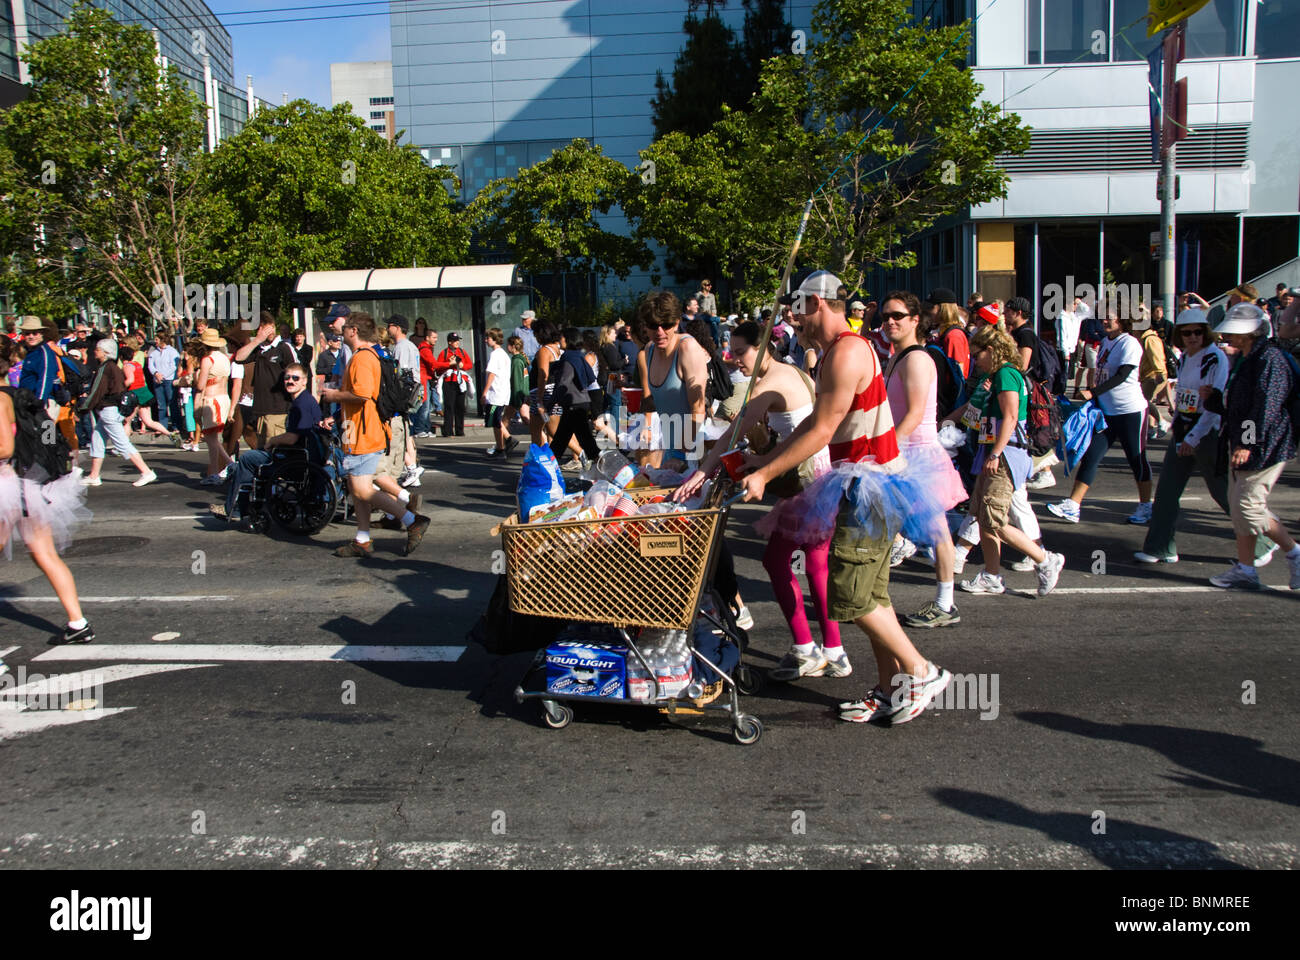 California: San Francisco Bay to Breakers annual foot race. Photo copyright Lee Foster. Photo # 31-casanf80835 - Stock Image